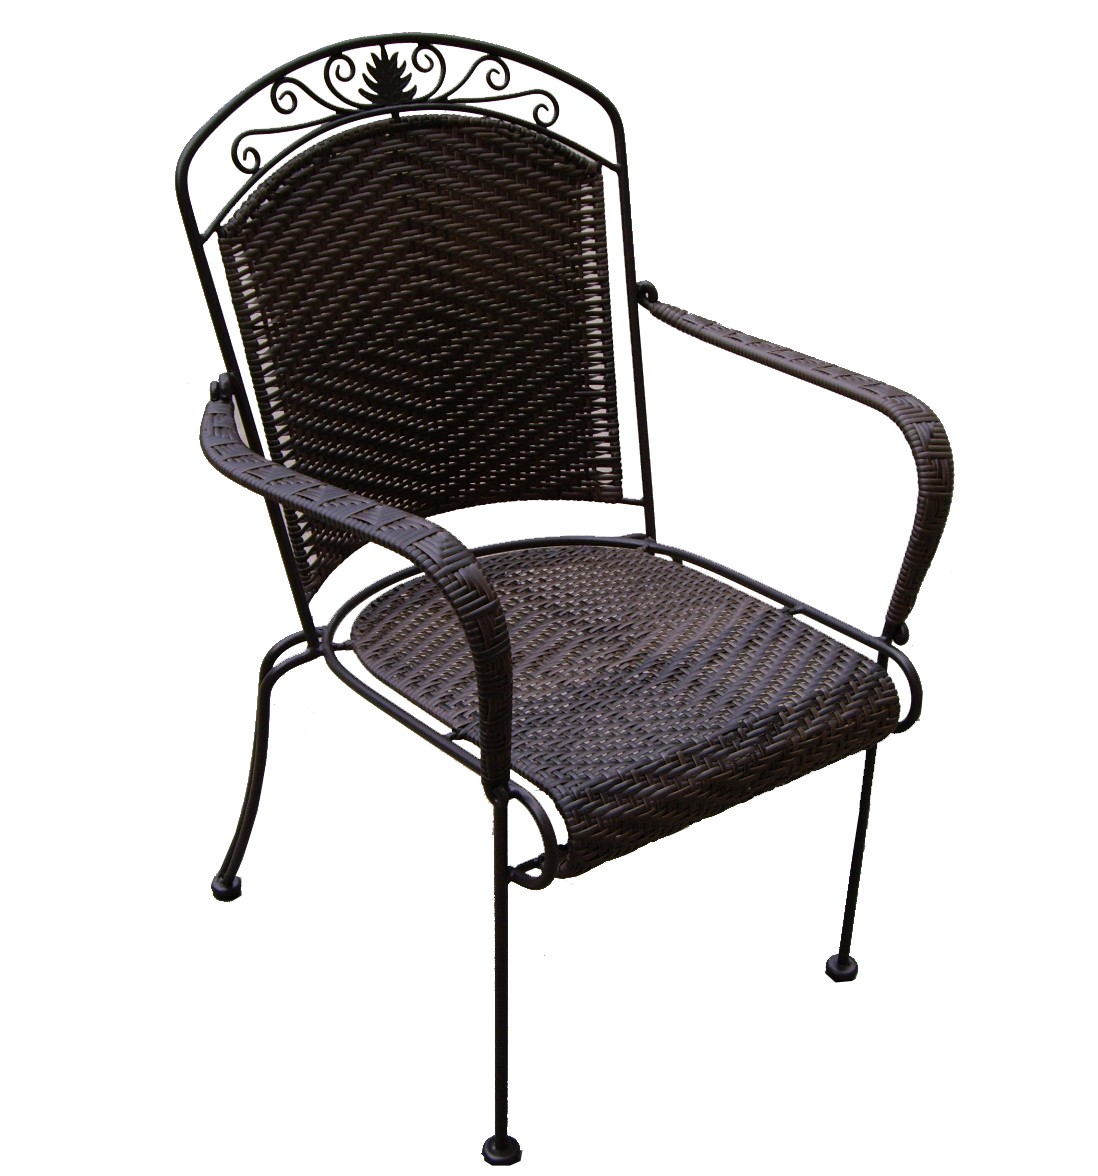 Wrought iron chairs designs. ~ Furniture Gallery